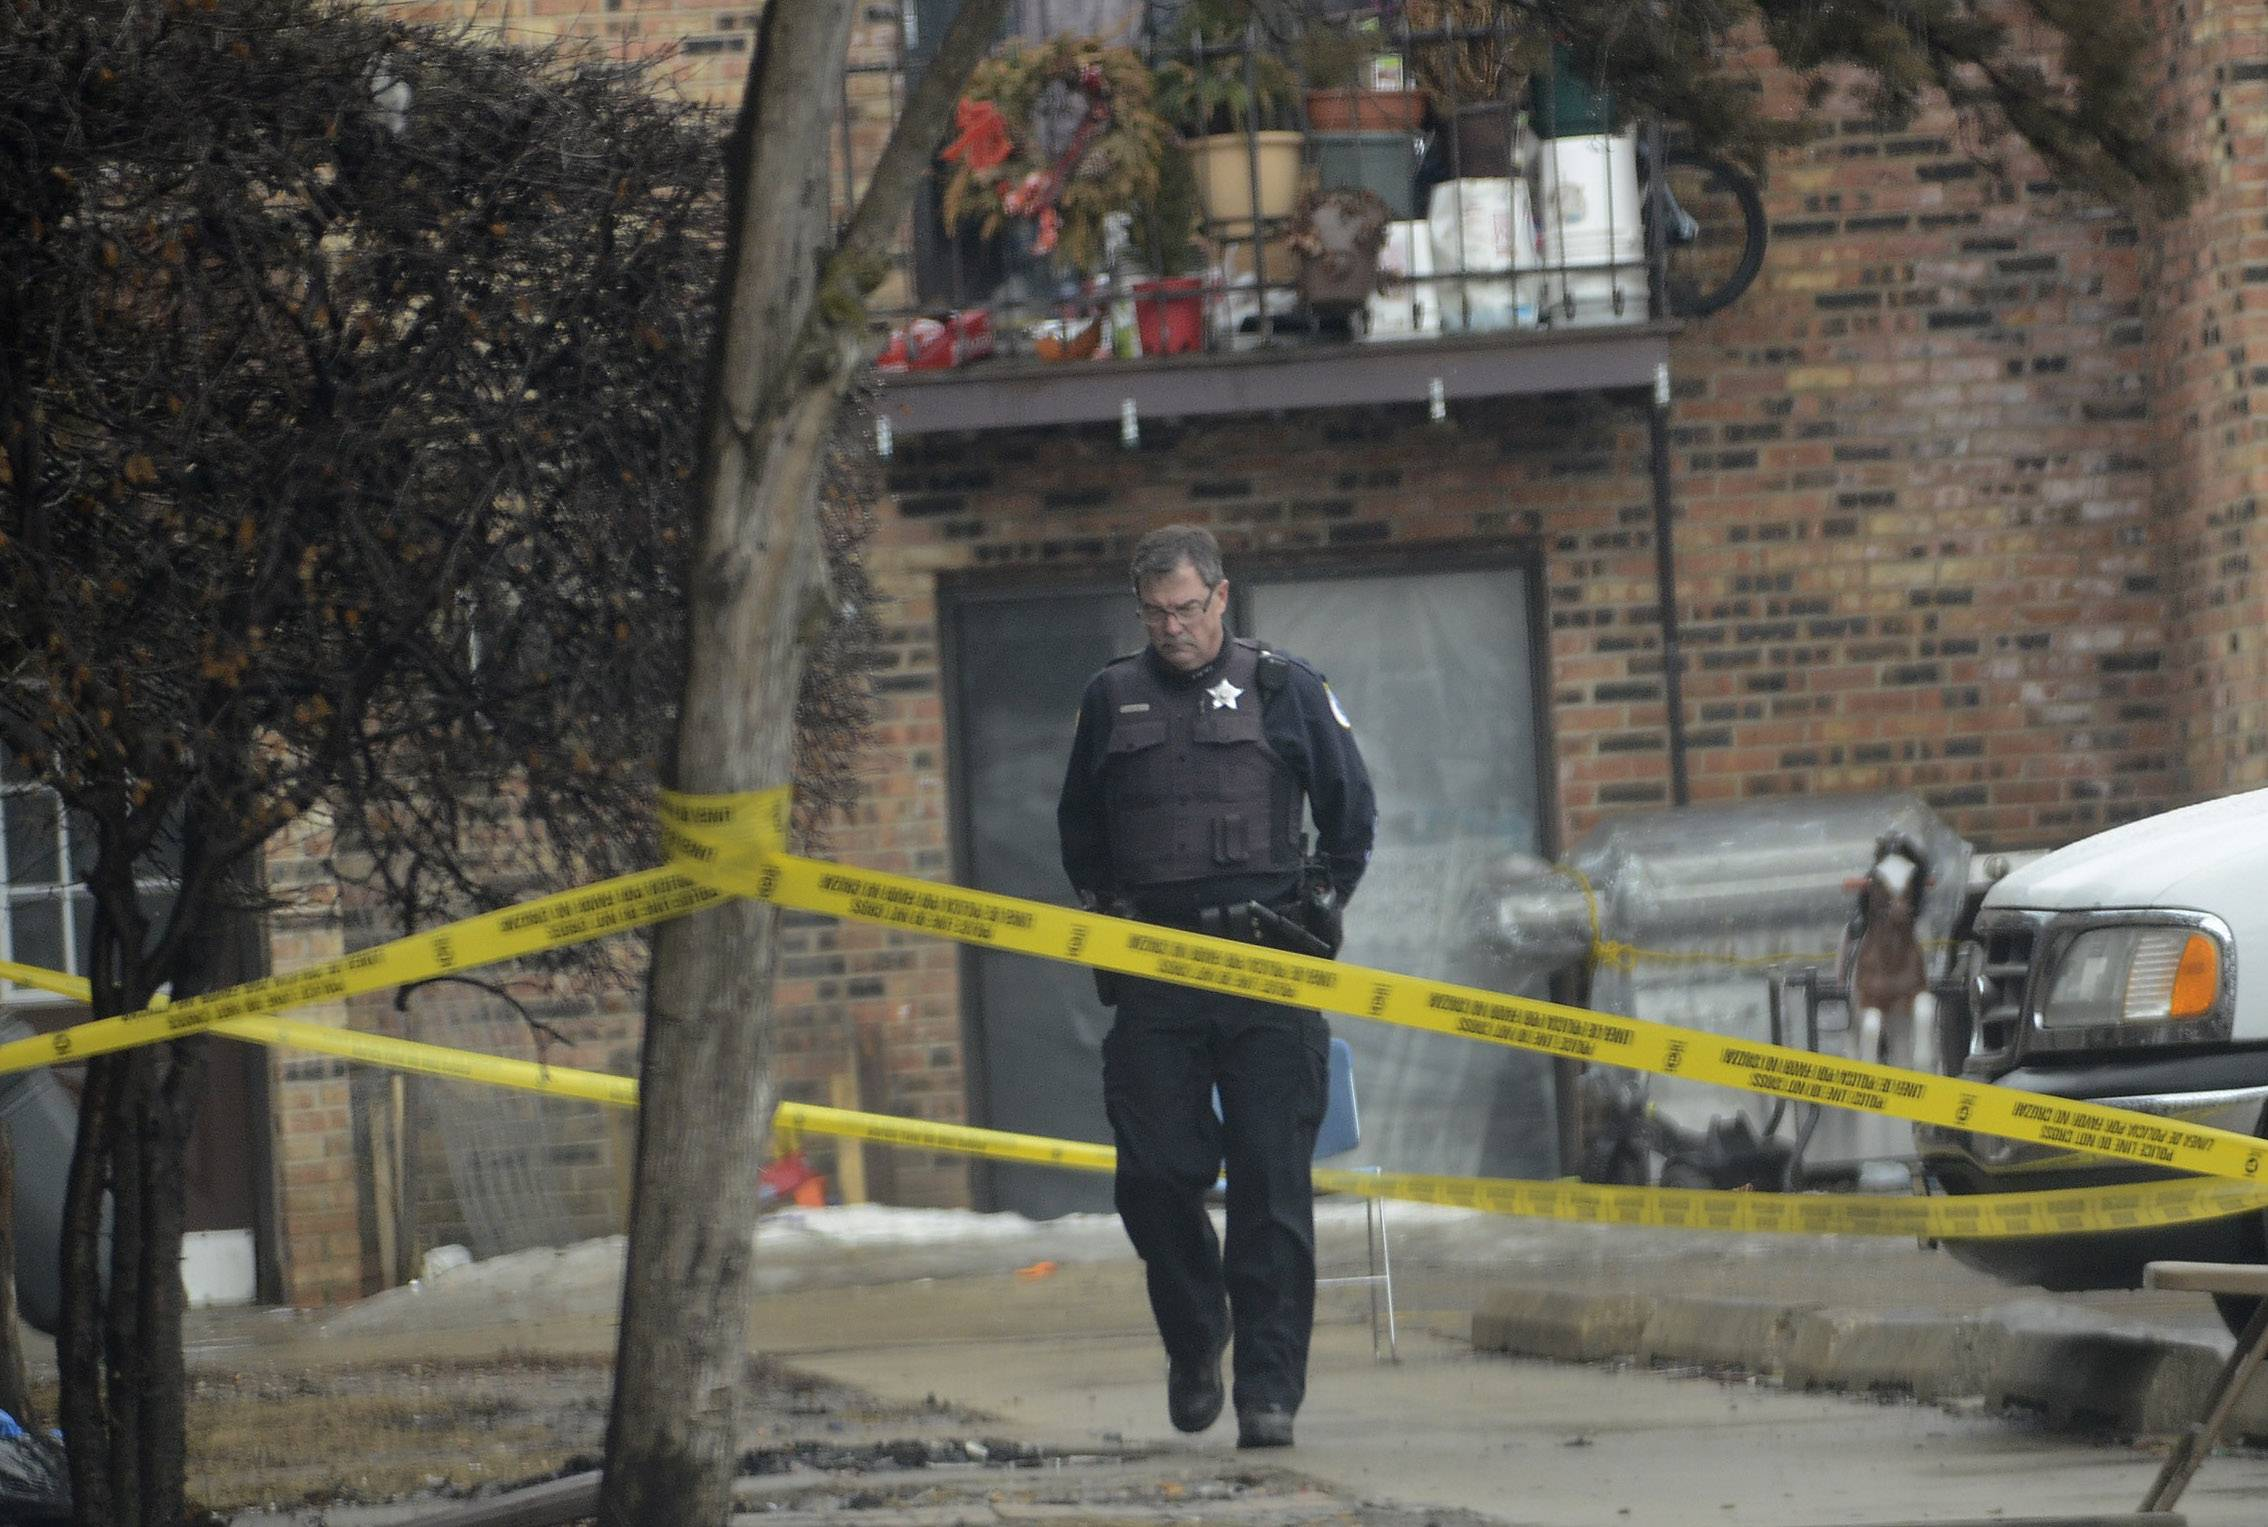 Police are investigating a double homicide at Baldwin Green Apartments in Palatine. Authorities say a 15-year-old boy and his father were found in an apartment early Wednesday morning with gunshot wounds.